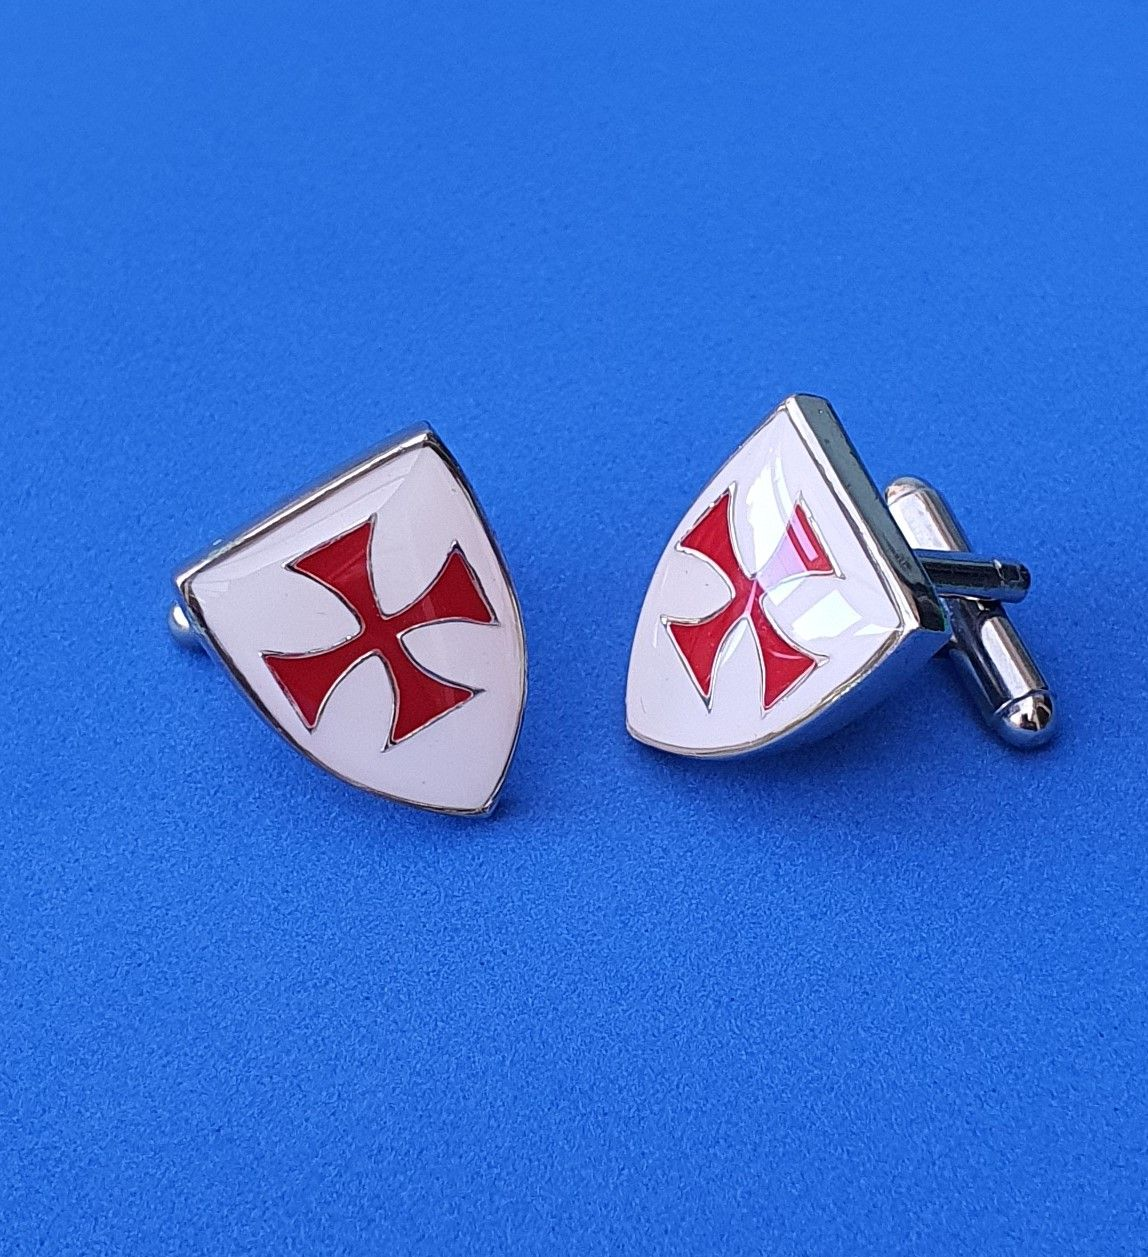 Knights Templar Shield Cufflinks - Enamelled - CL0758